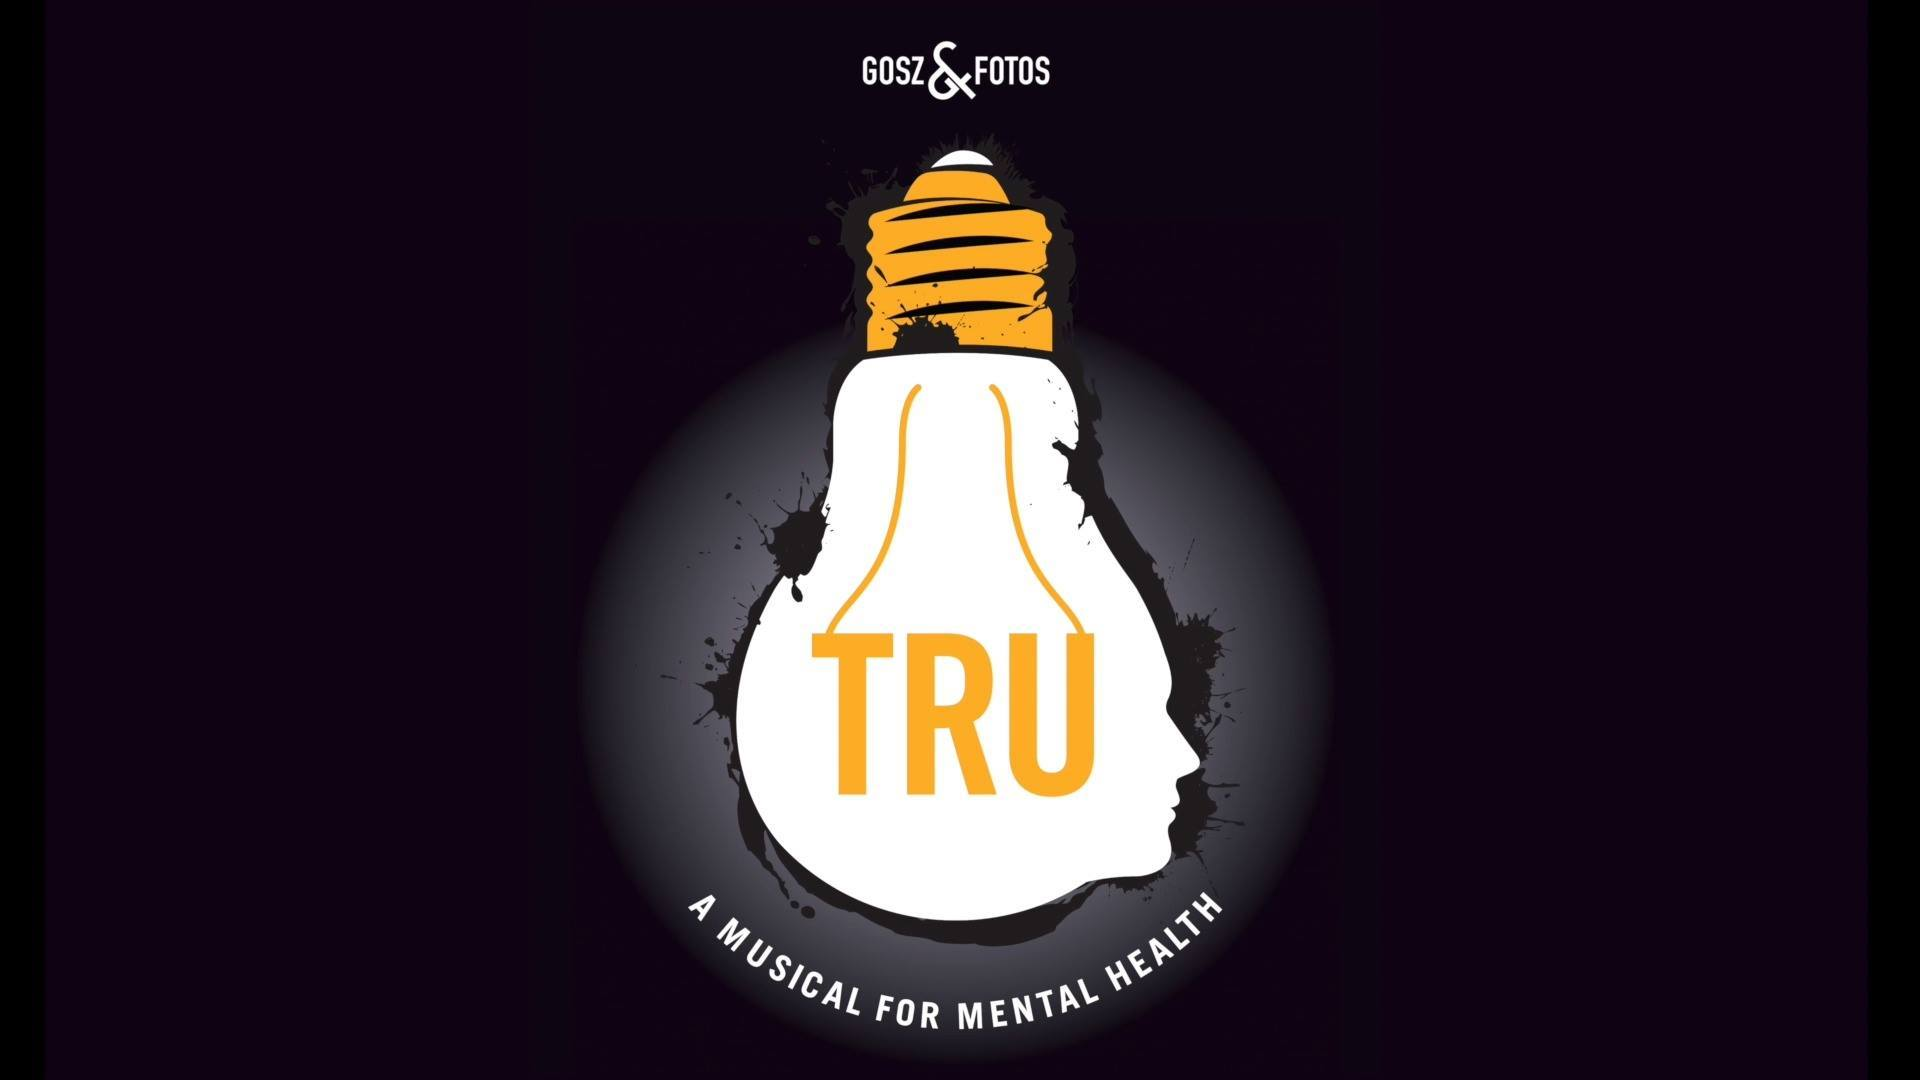 TICKETS FOR TRU ARE ON SALE NOW!